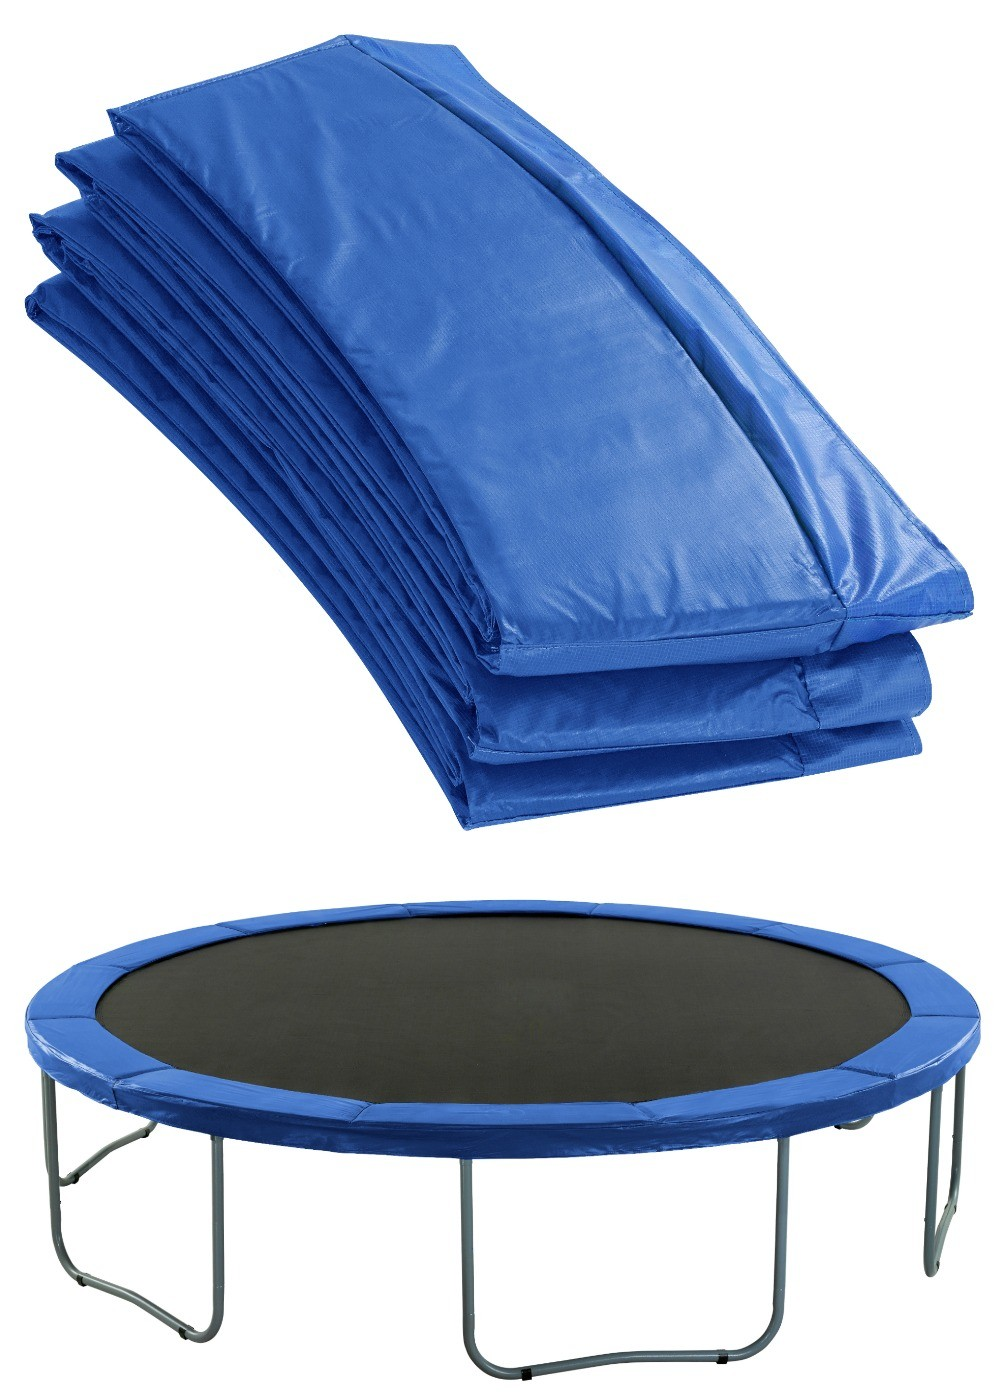 Premium Trampoline Replacement Safety Pad (Spring Cover) | Padding for 335cm 11ft Trampoline | Blue